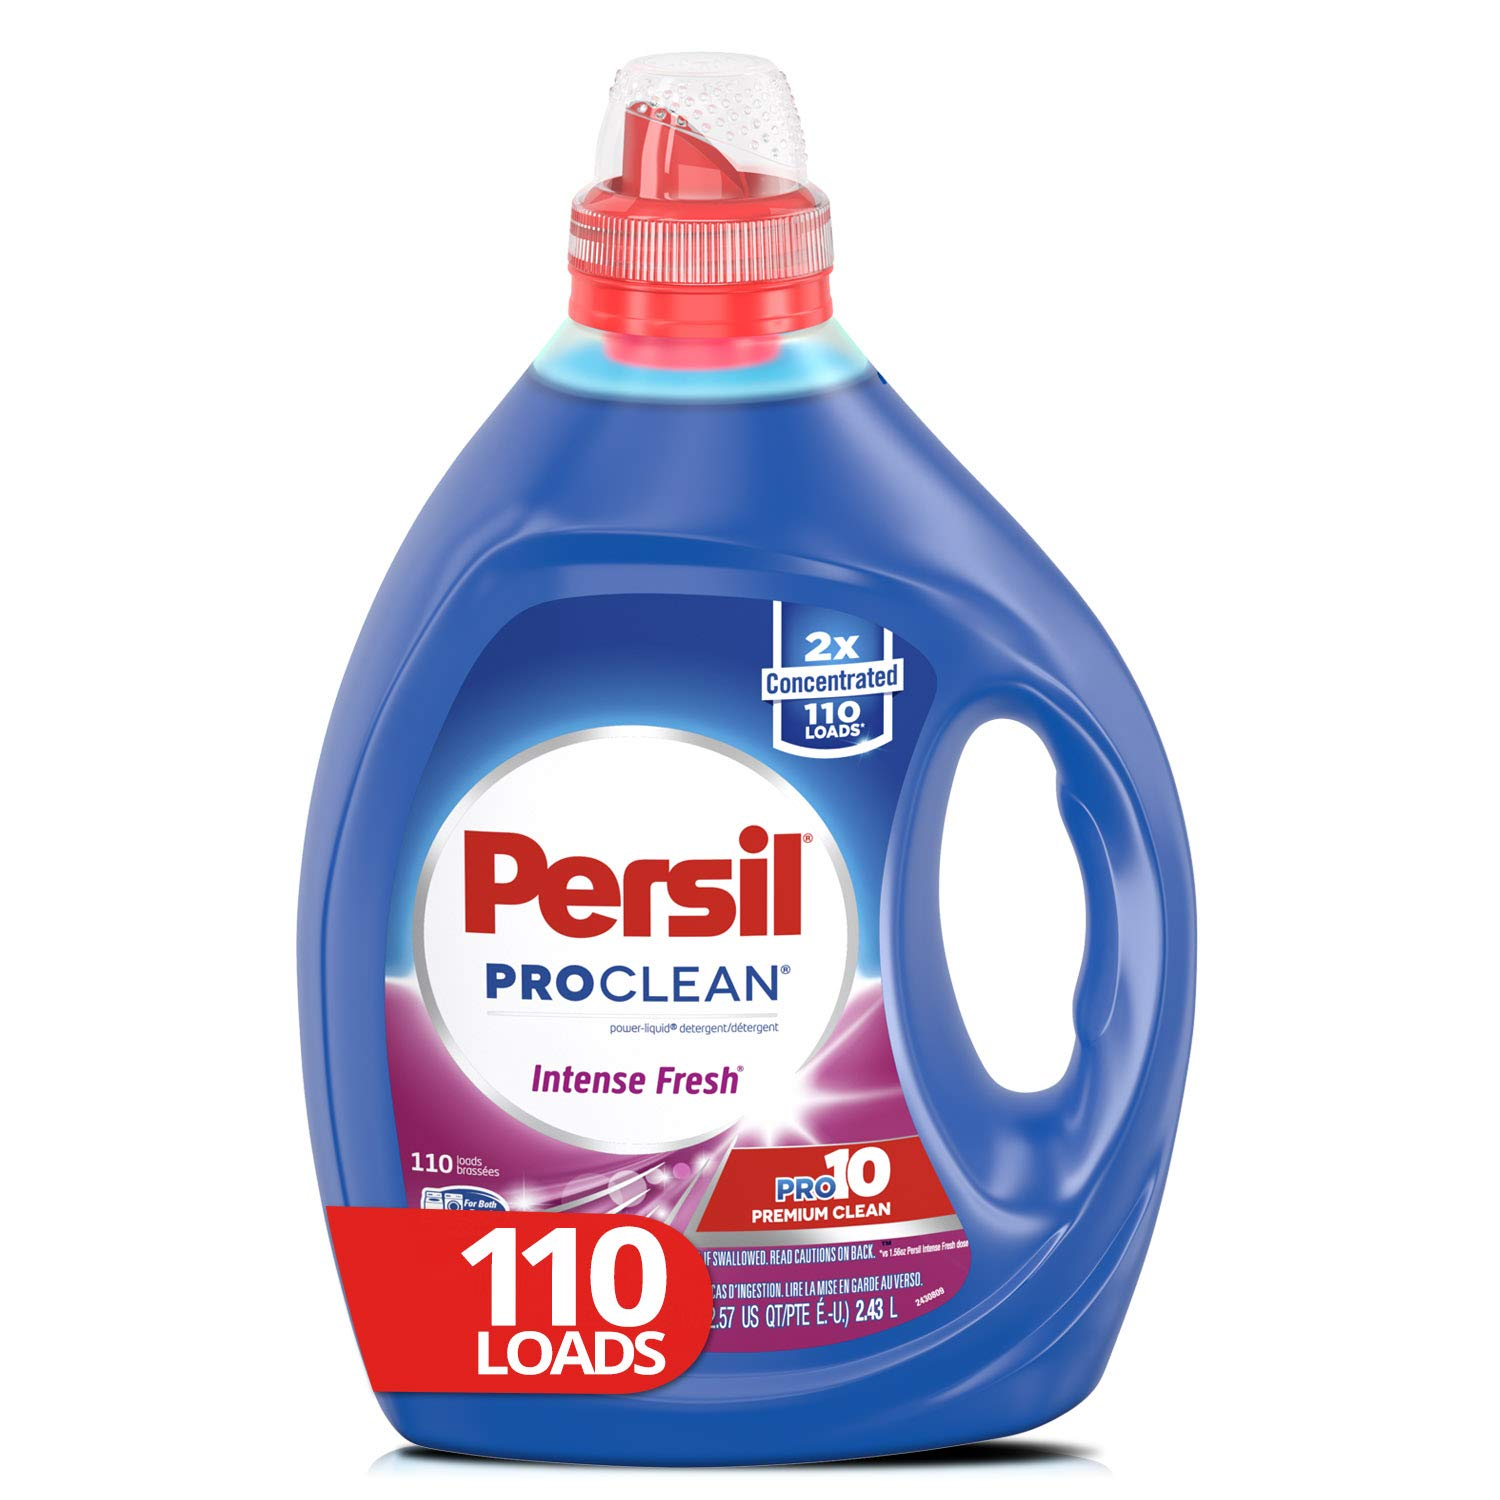 Persil Liquid Laundry Detergent, ProClean Intense Fresh, 2X Concentrated, 110 Loads by Persil